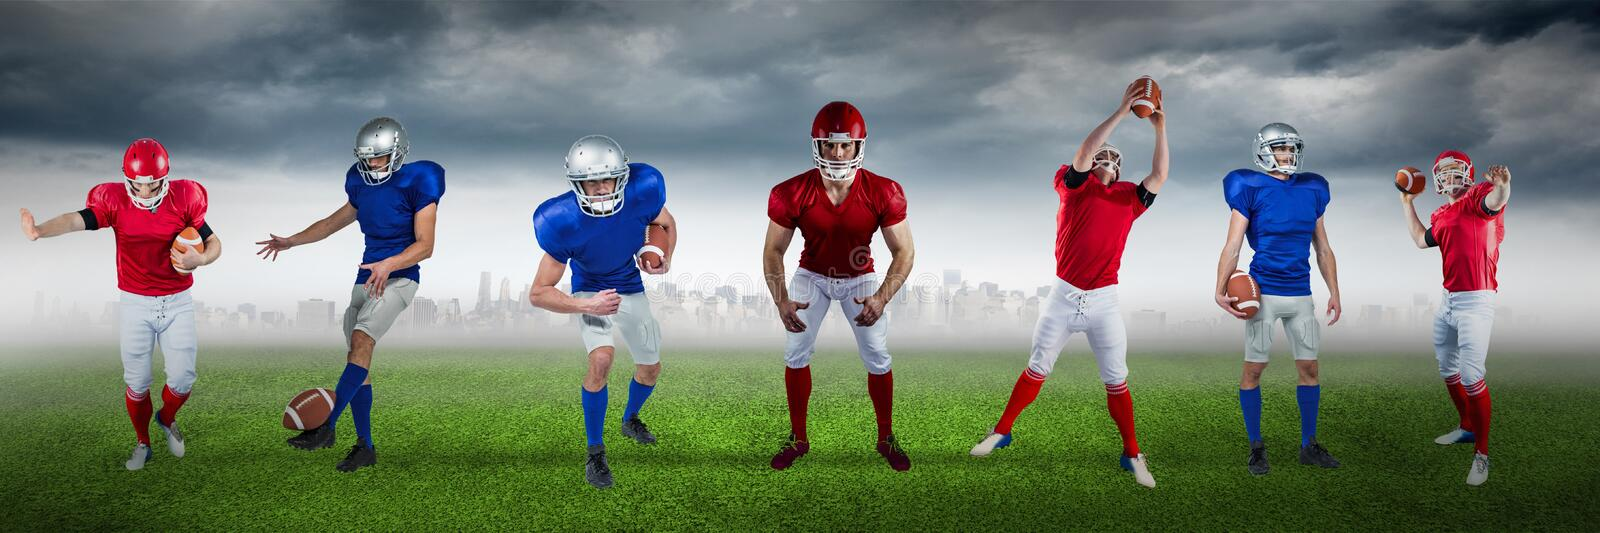 Composite image of football player on football field background stock photos